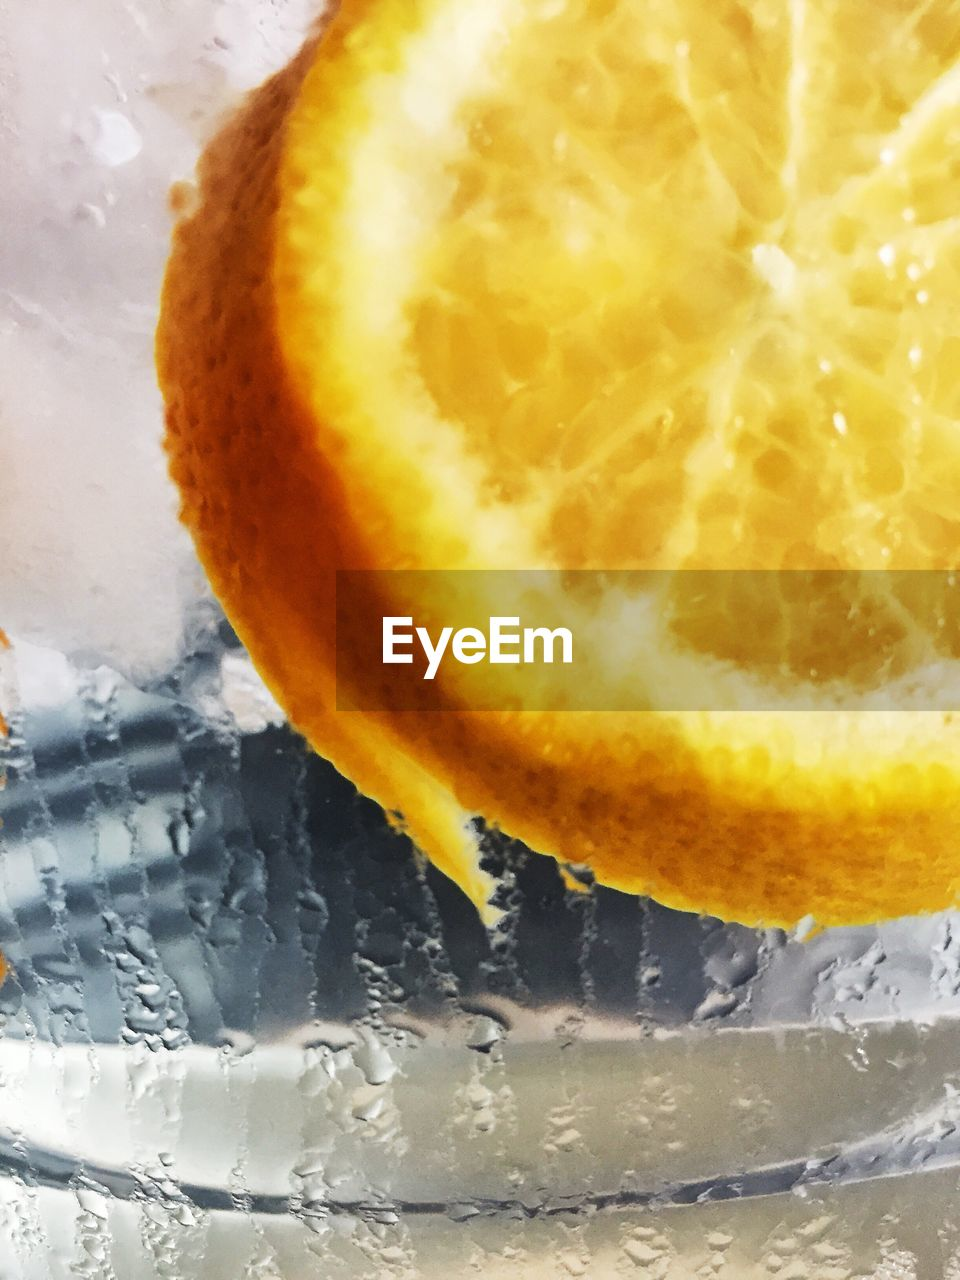 food and drink, yellow, freshness, food, close-up, indoors, no people, fruit, healthy eating, sweet food, day